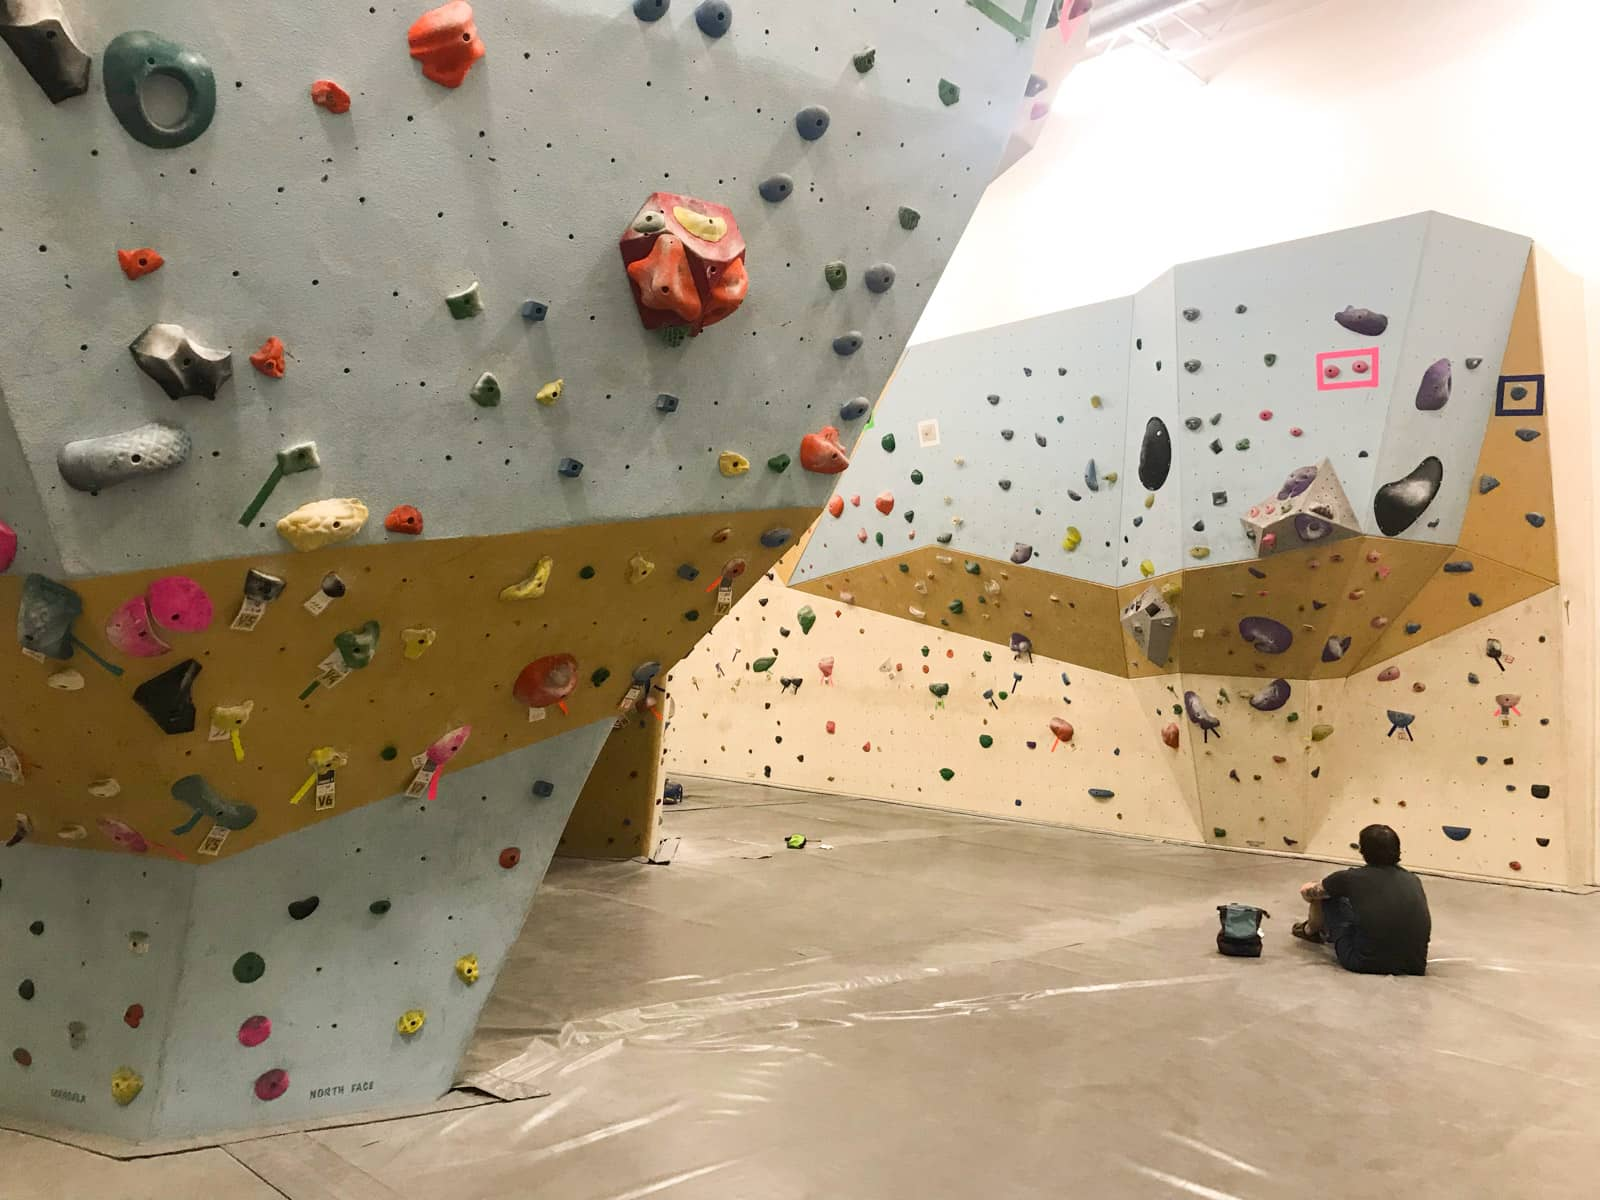 The inside of a bouldering/rock climbing gym. Coloured rock holds line the geometrically-shaped walls, and someone sits on the landing, facing away from the camera.